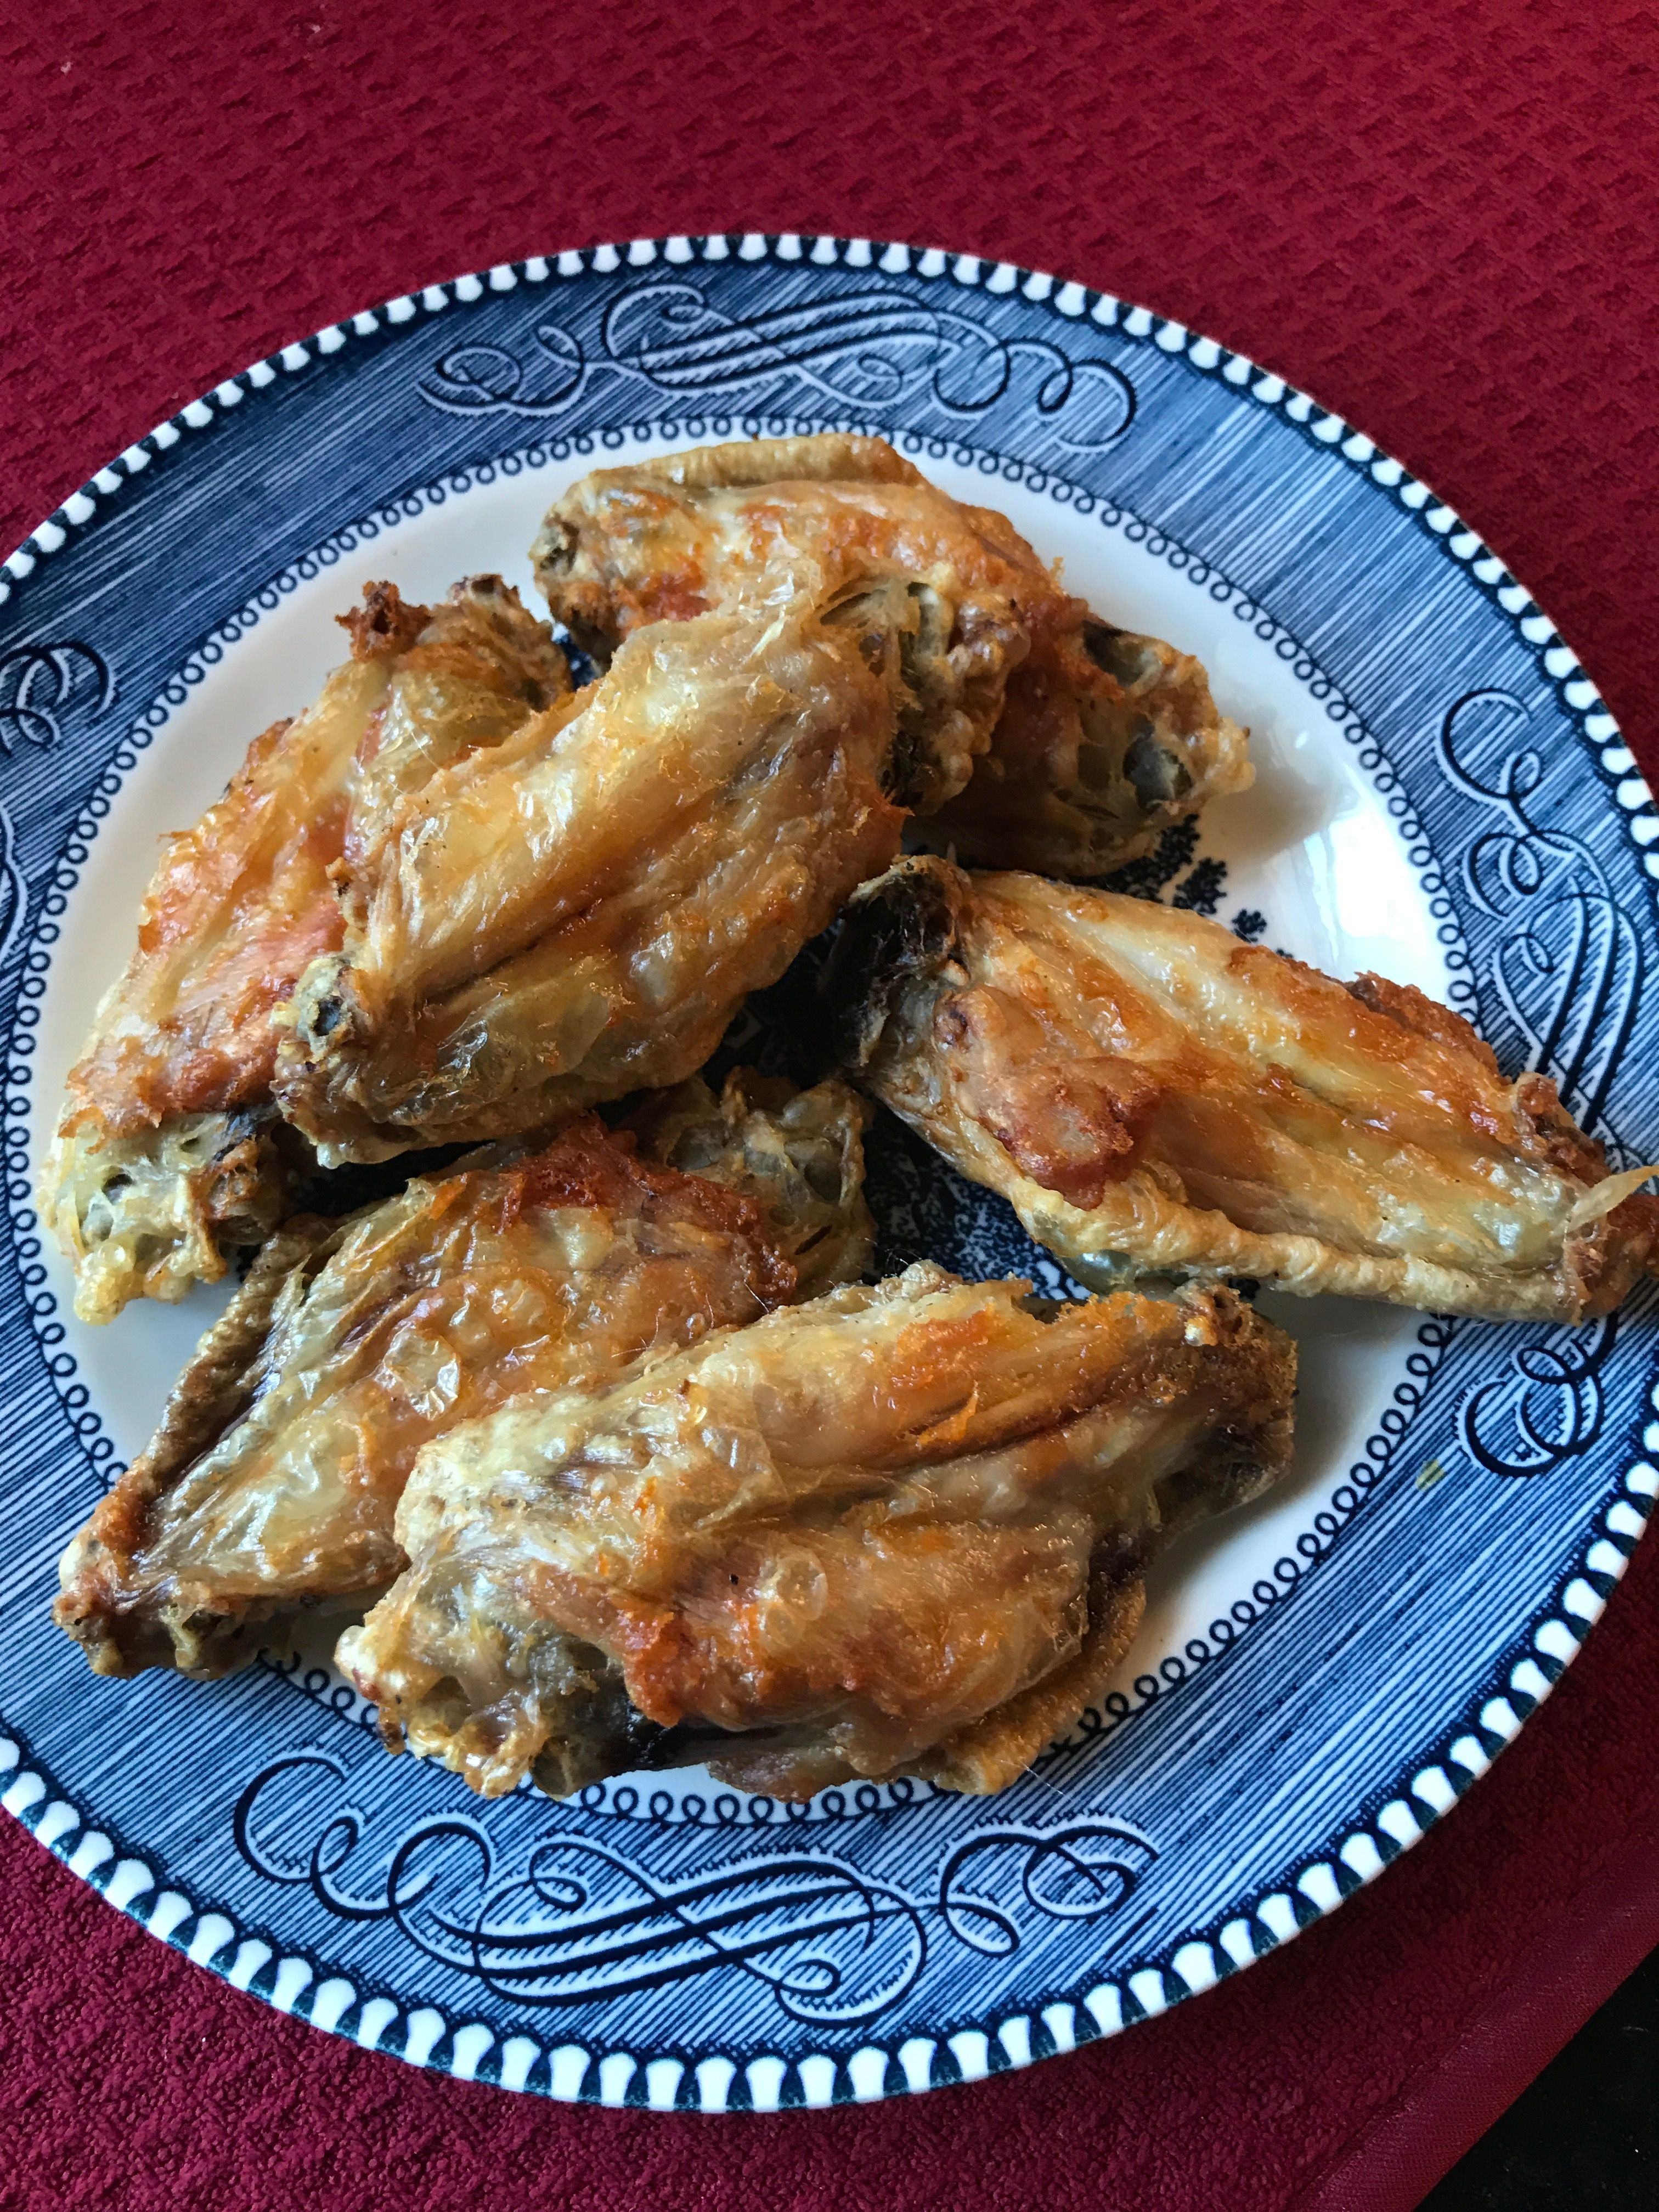 Chicken wingers in the air fryer. Delicious. Temp 400 for